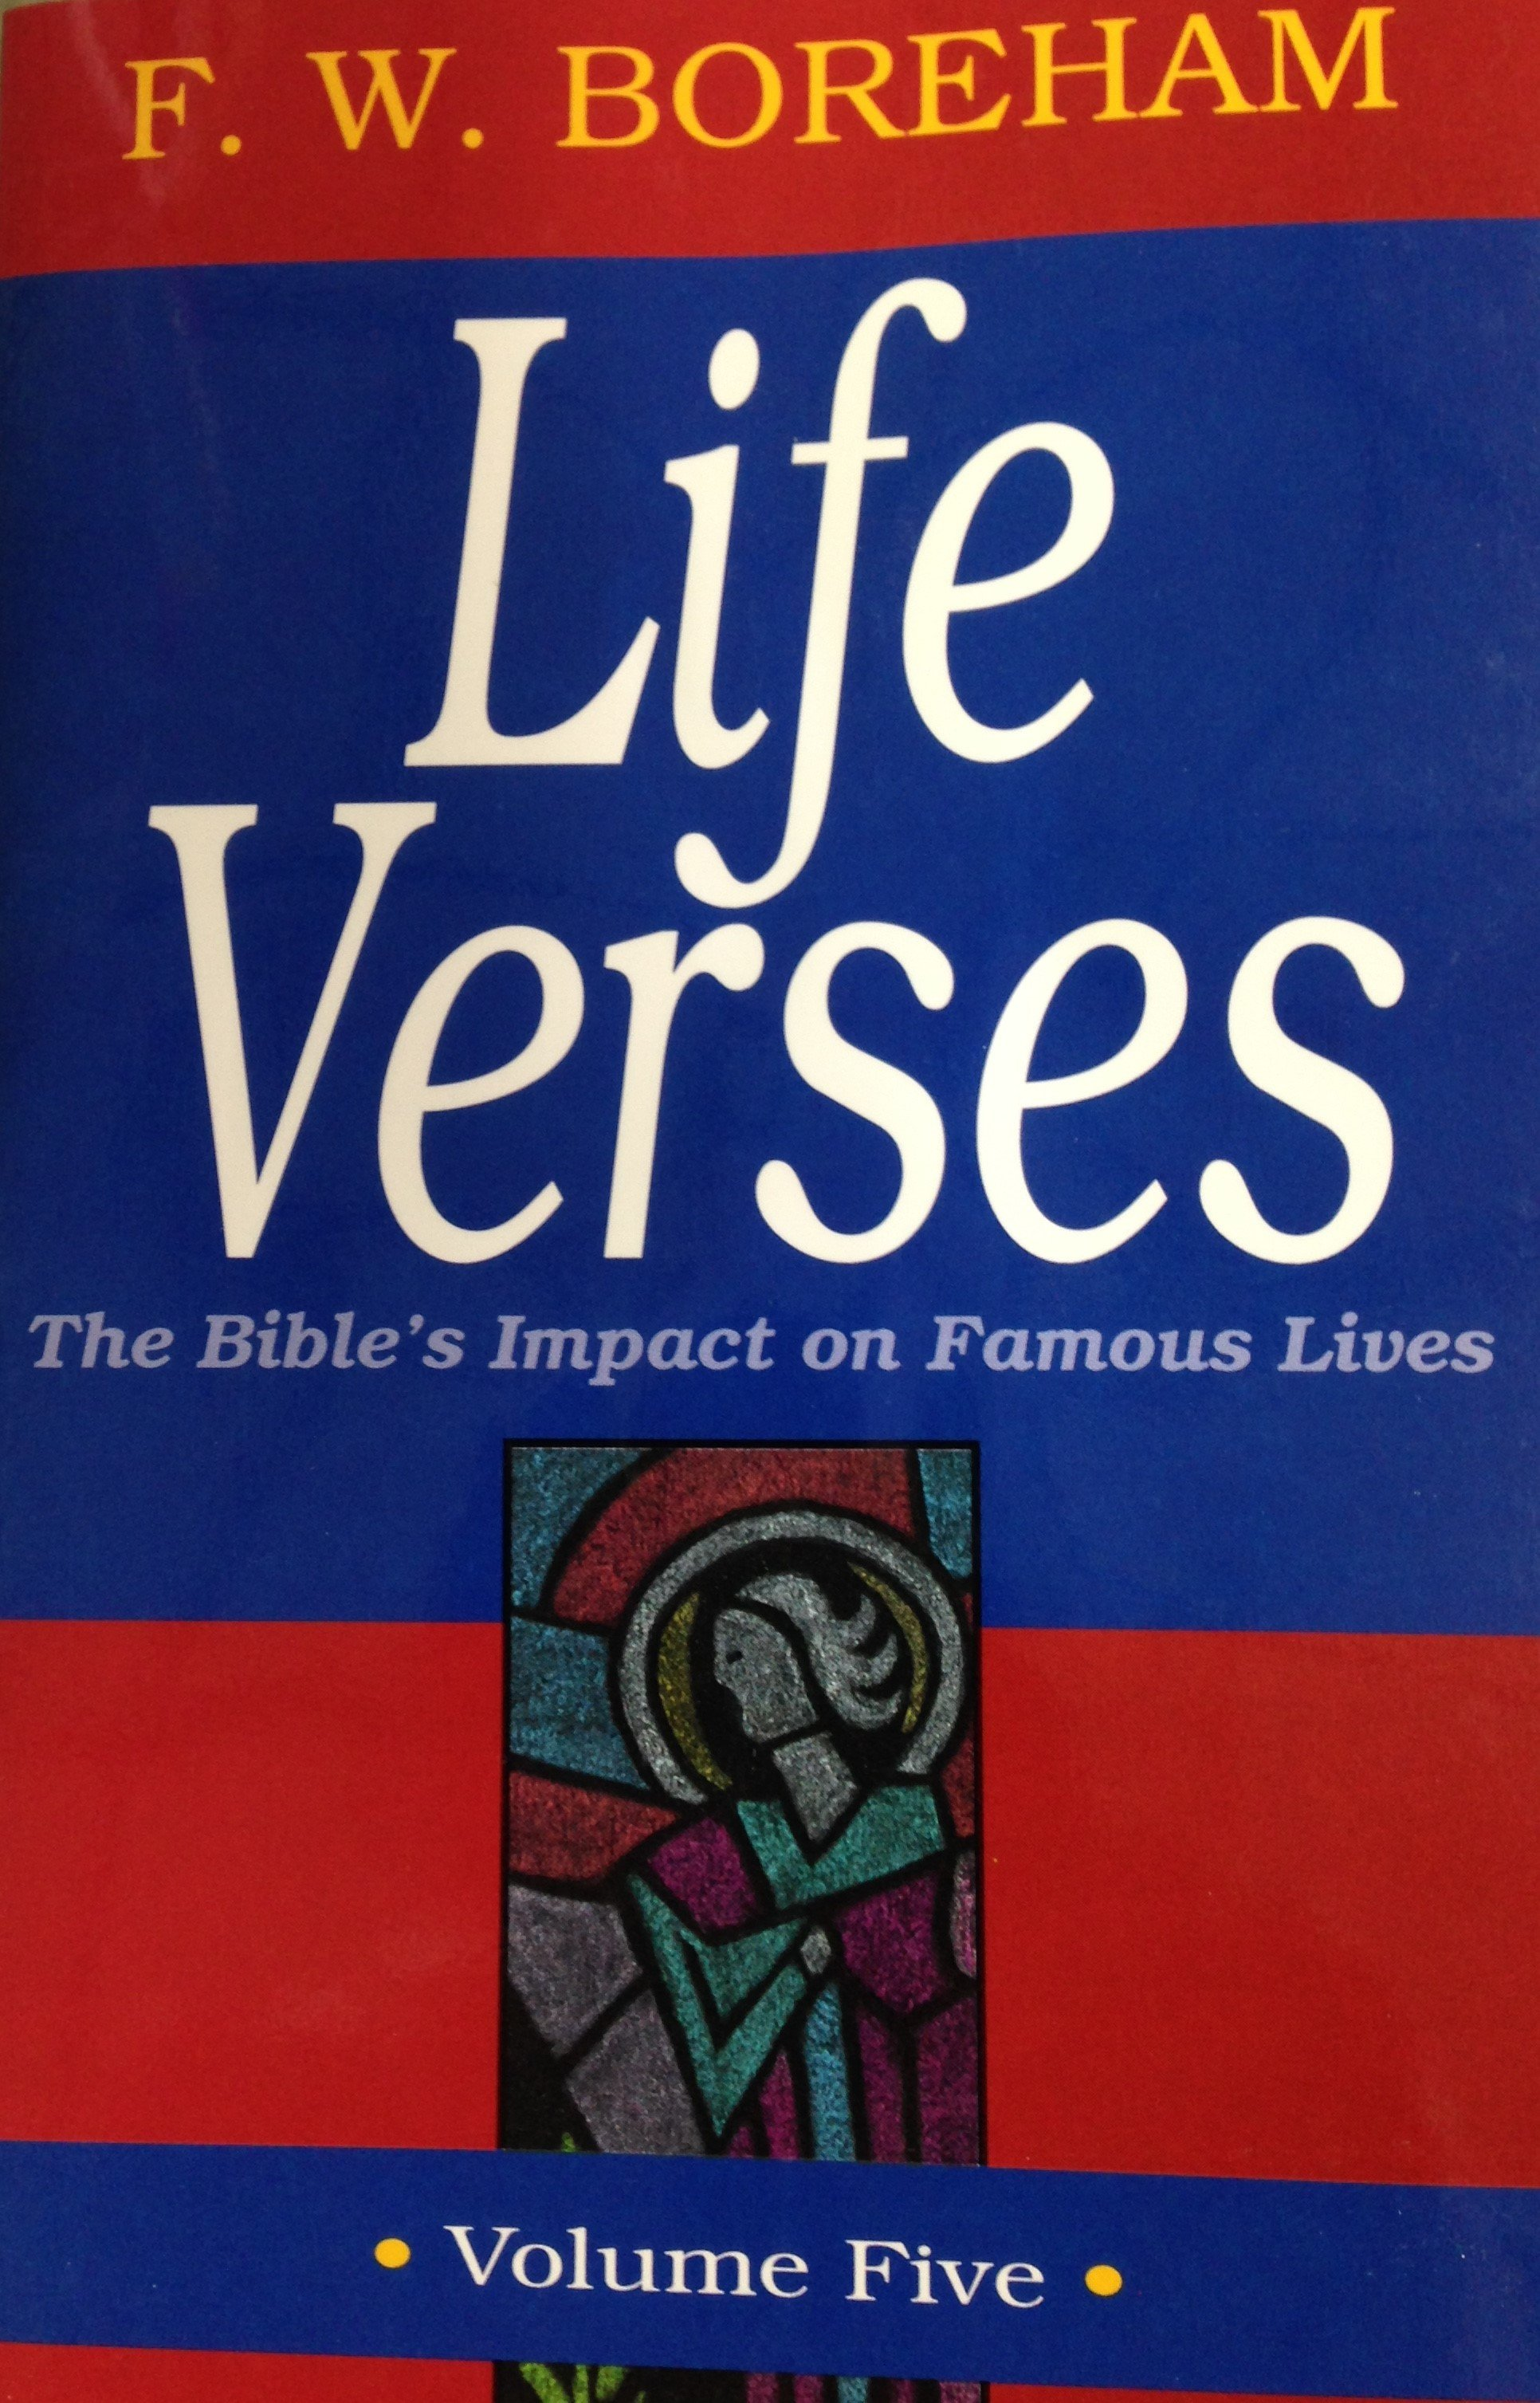 Life Verses:  The Bible's Impact on Famous Lives Volume 5 by F.W. Boreham 00106